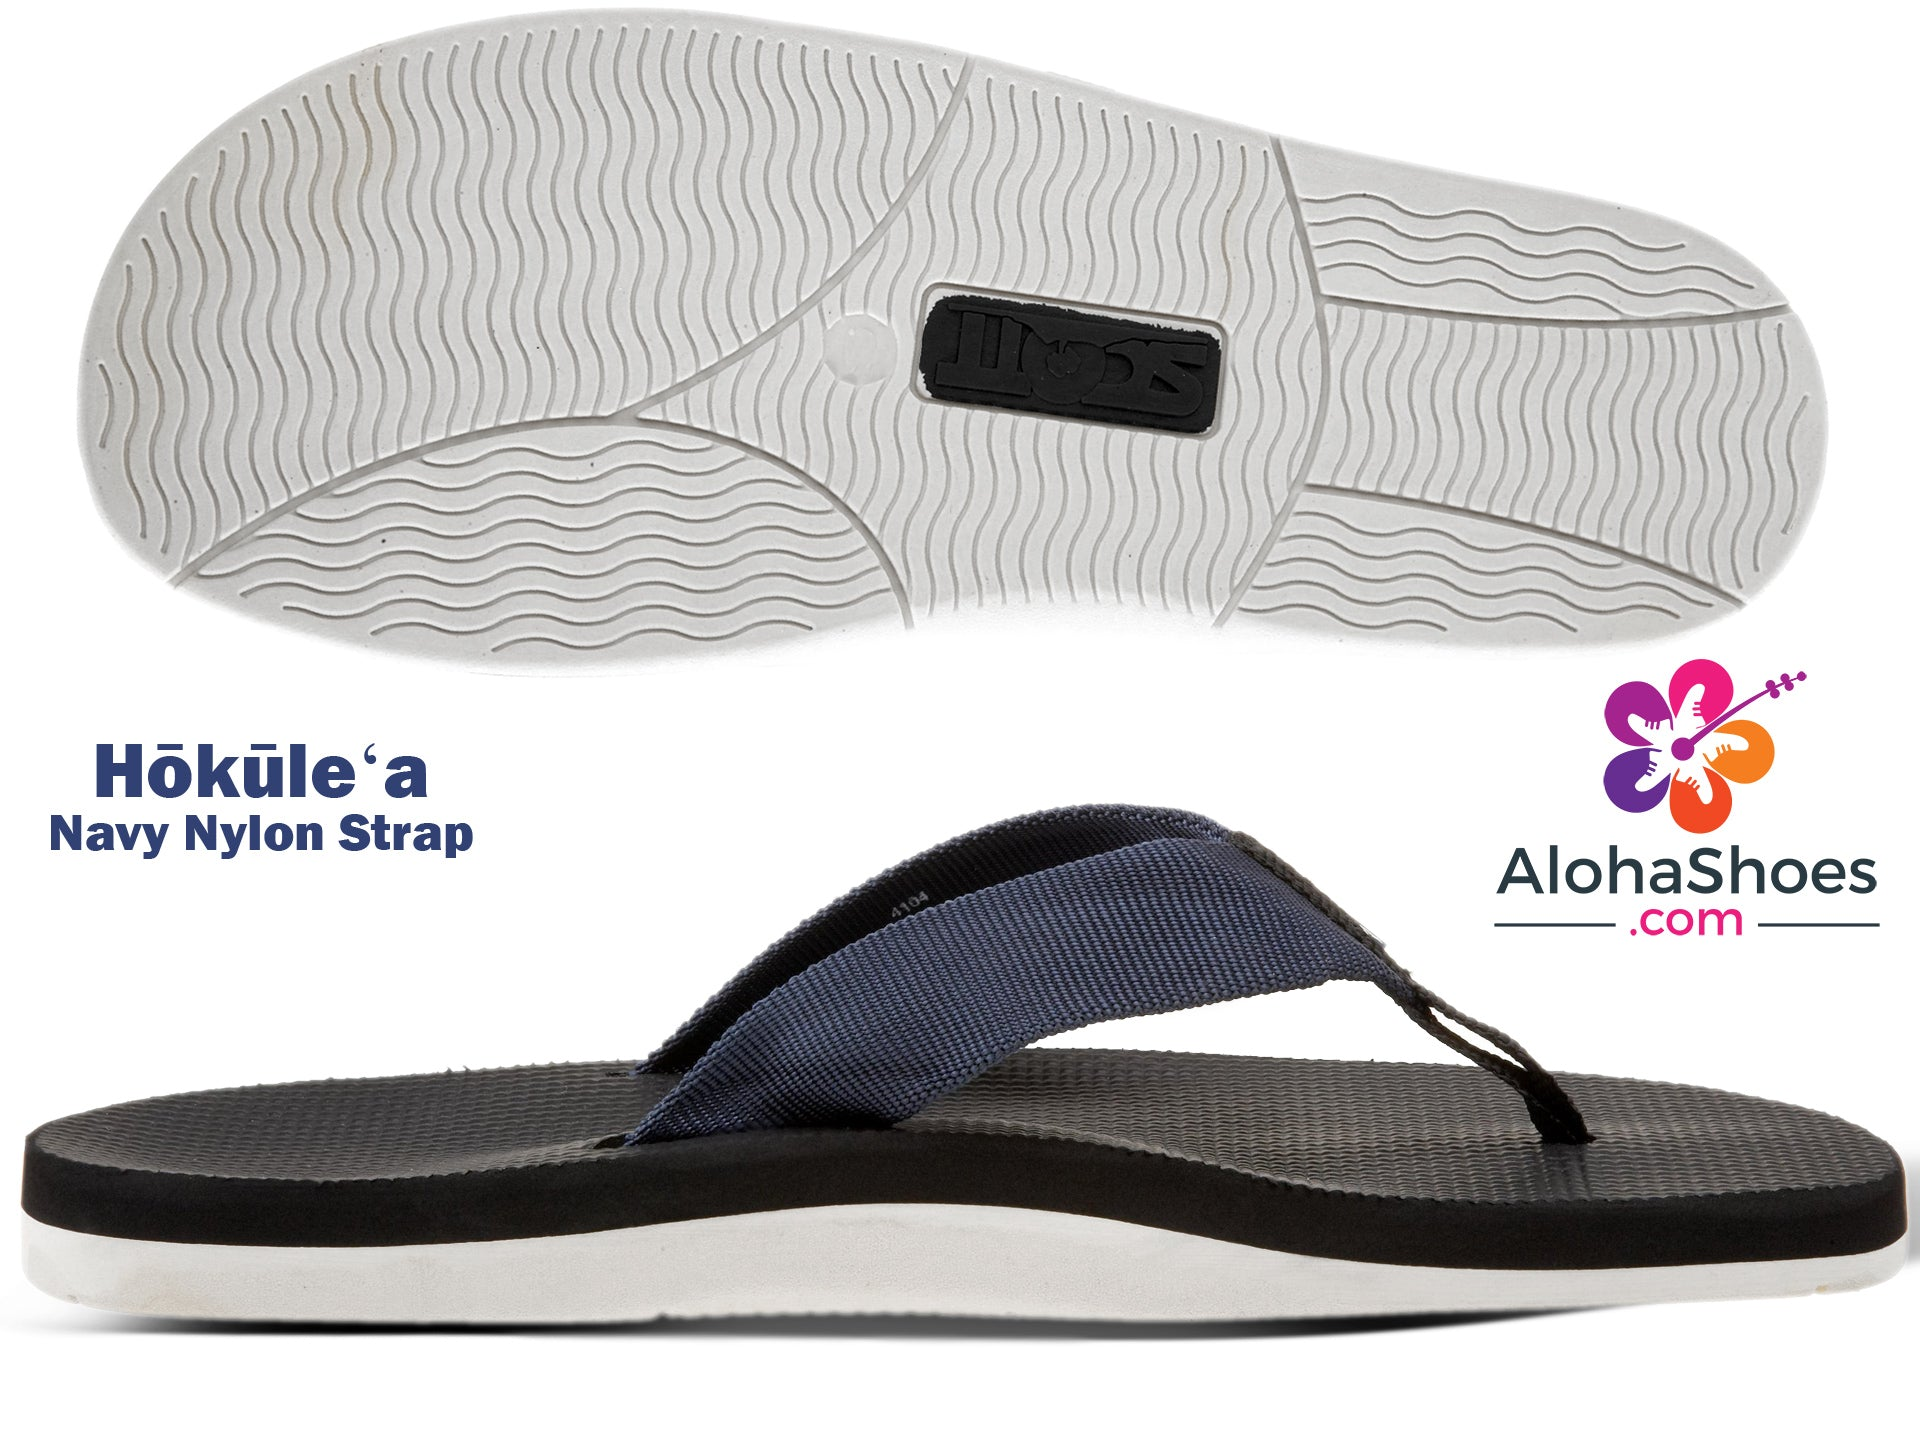 Scott Hokulea Slippers | White Bottom Sandals from Hawaii - AlohaShoes.com